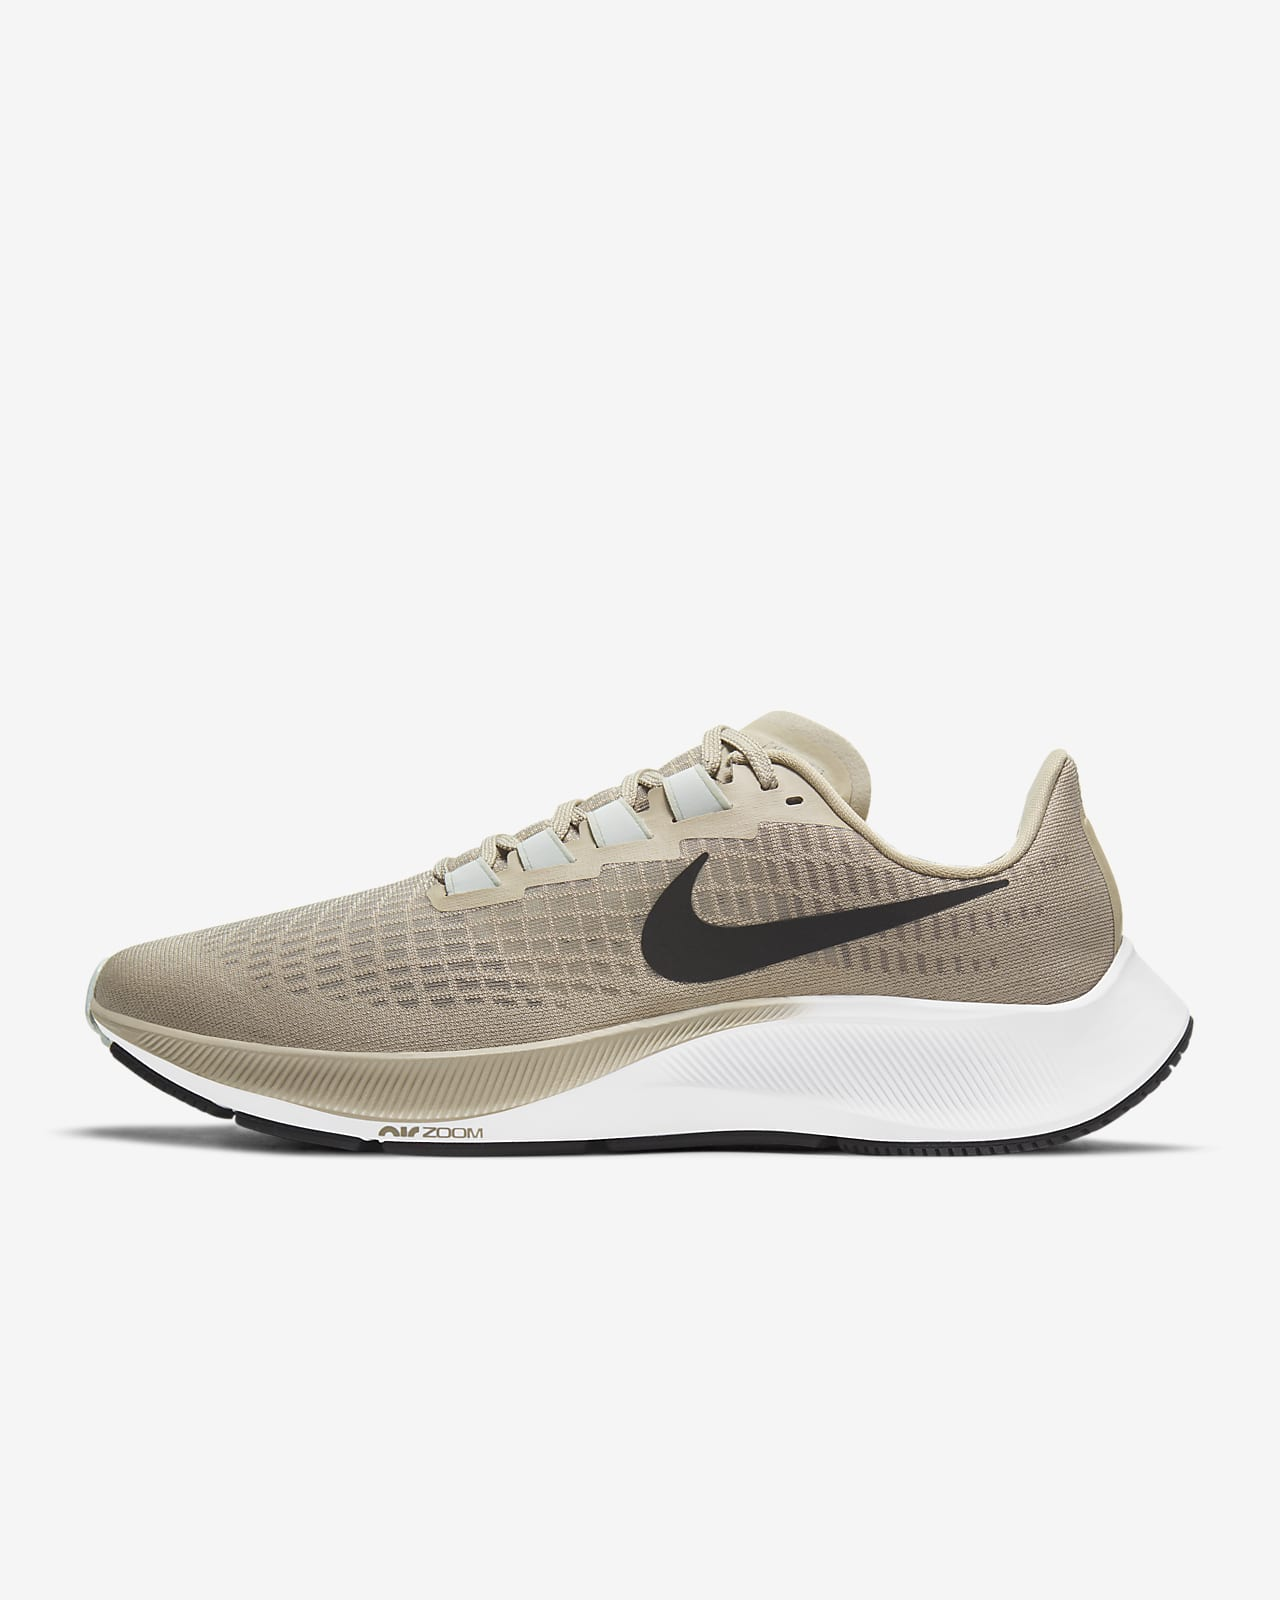 Chaussure de running Nike Air Zoom Pegasus 37 pour Homme